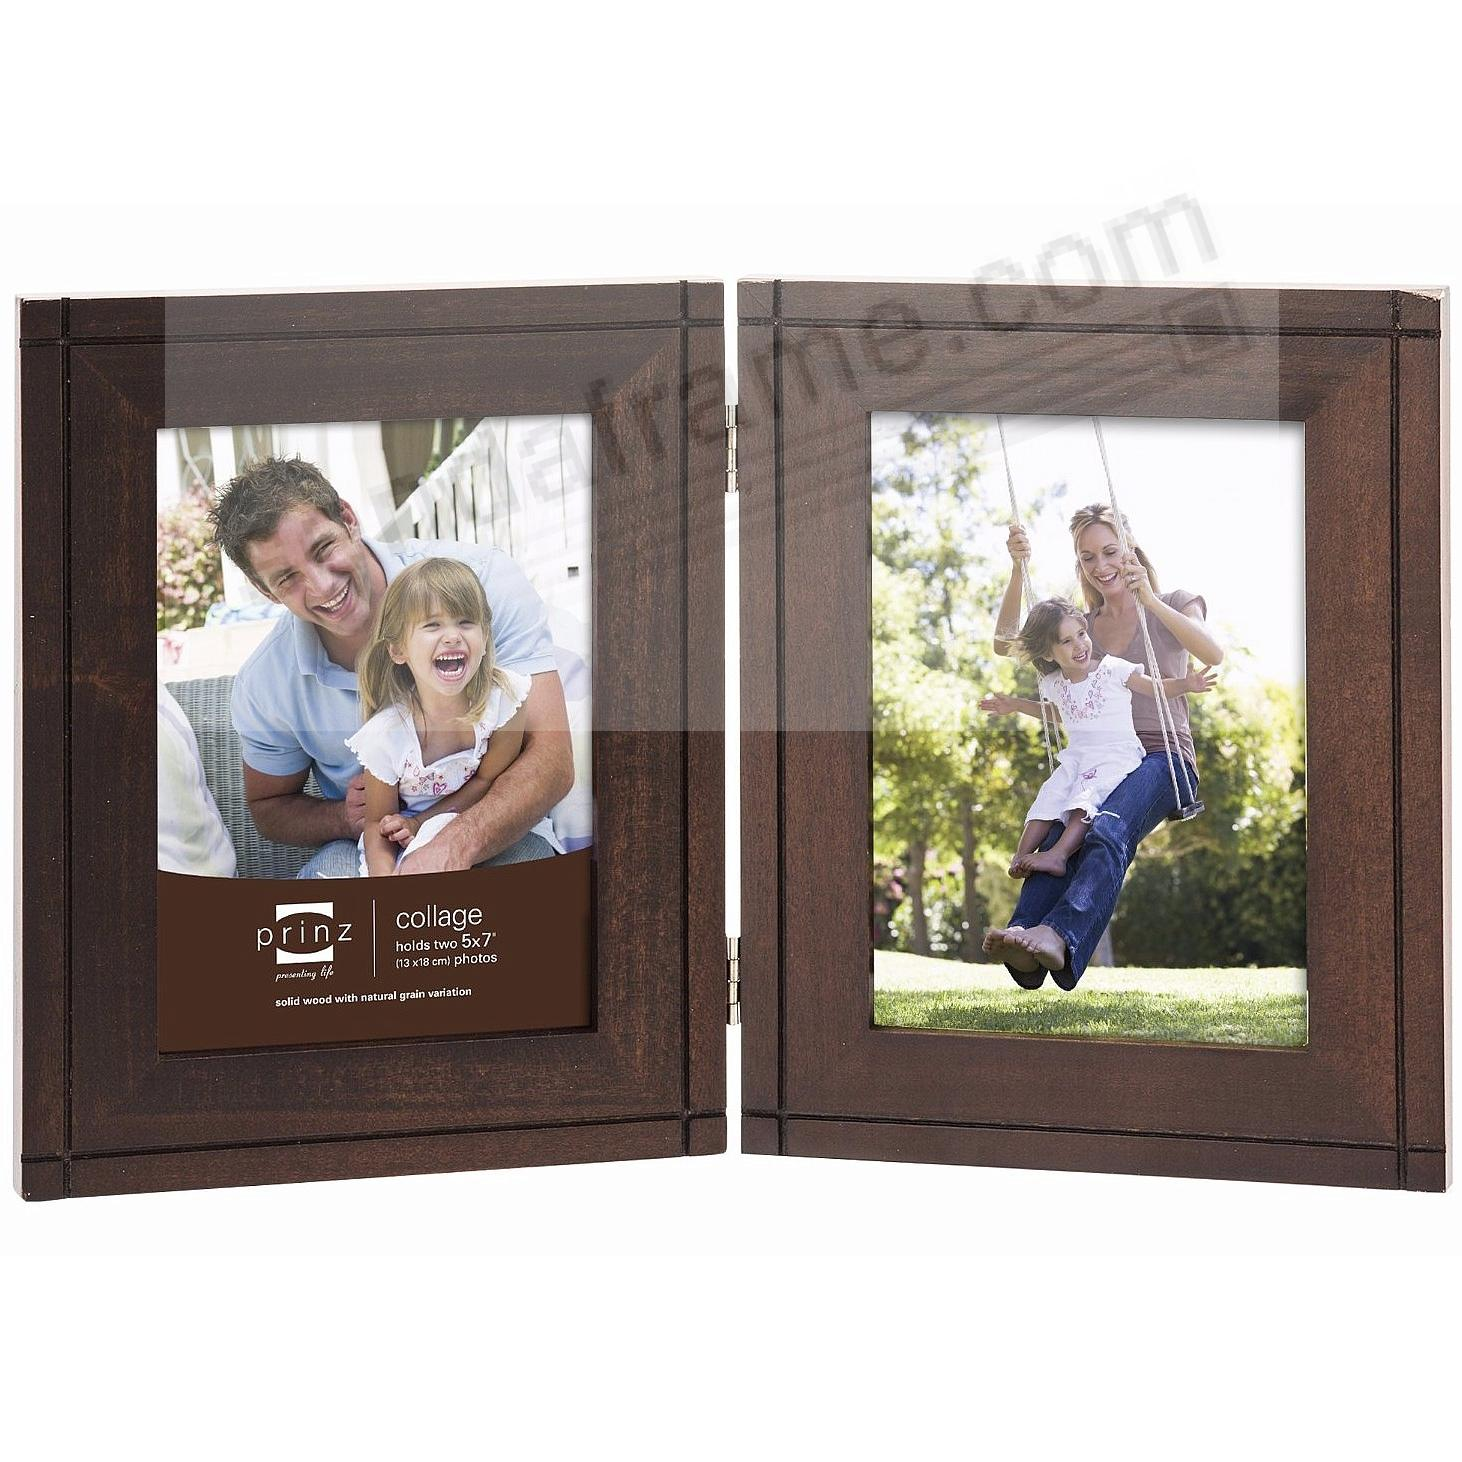 DRYDEN Expresso stained hinged 5x7 double by Prinz® - Picture Frames ...